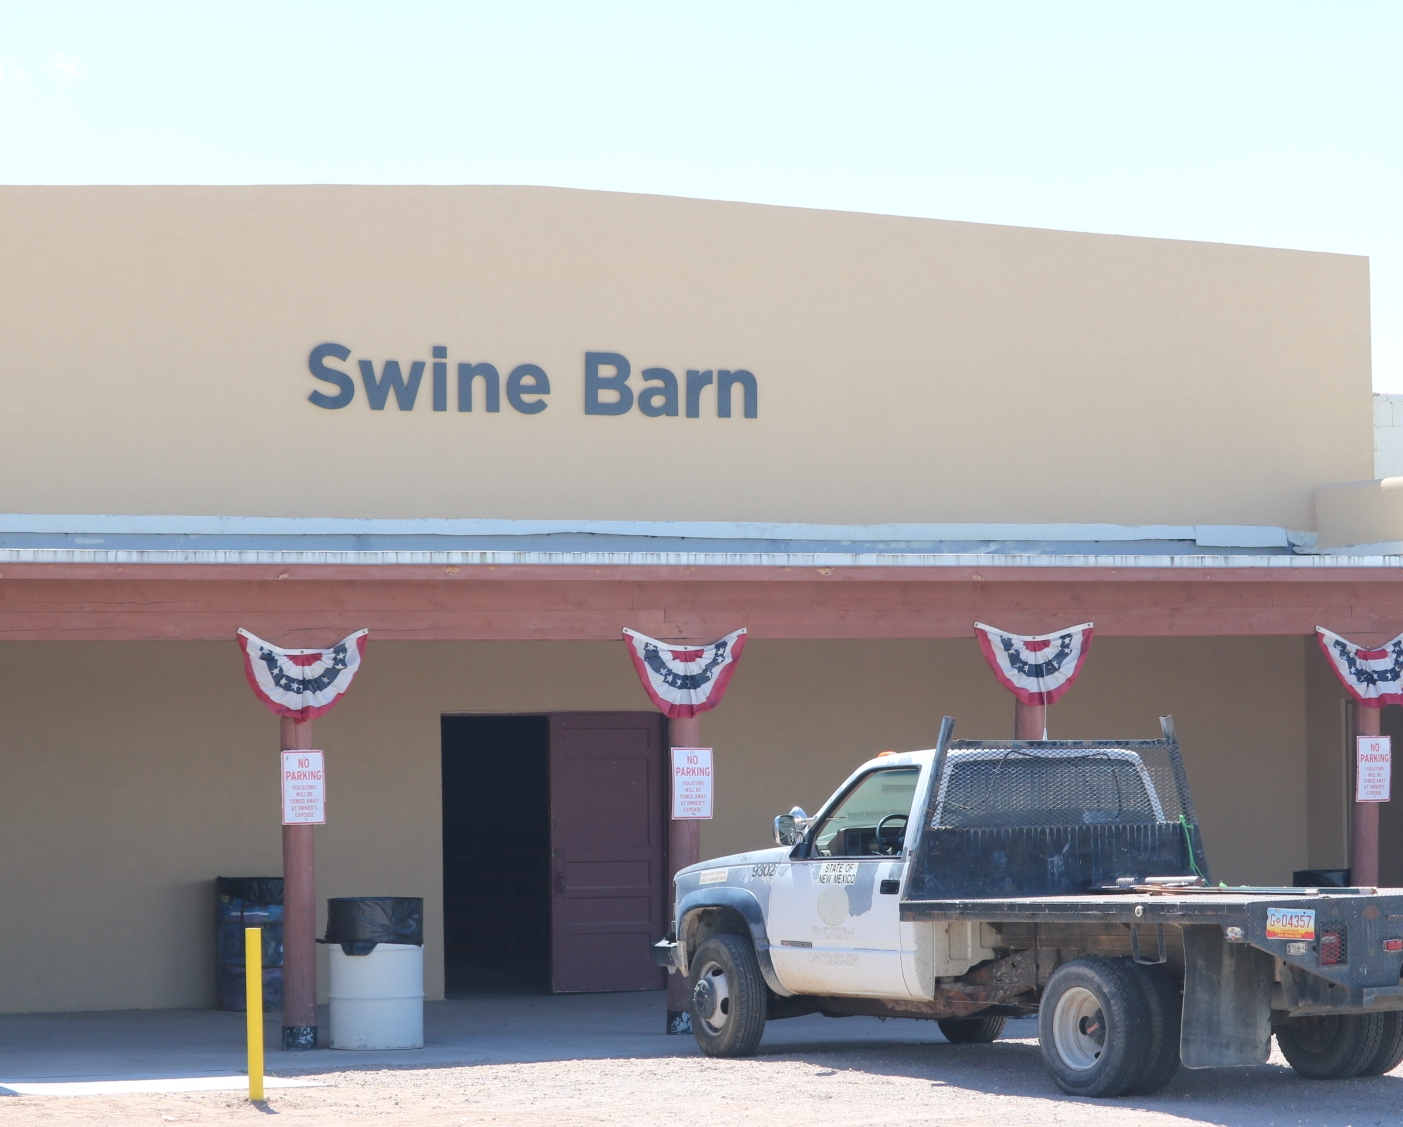 """Take the letters from both ends of """"Swine Barn,""""and you get """"Wine Bar""""..."""